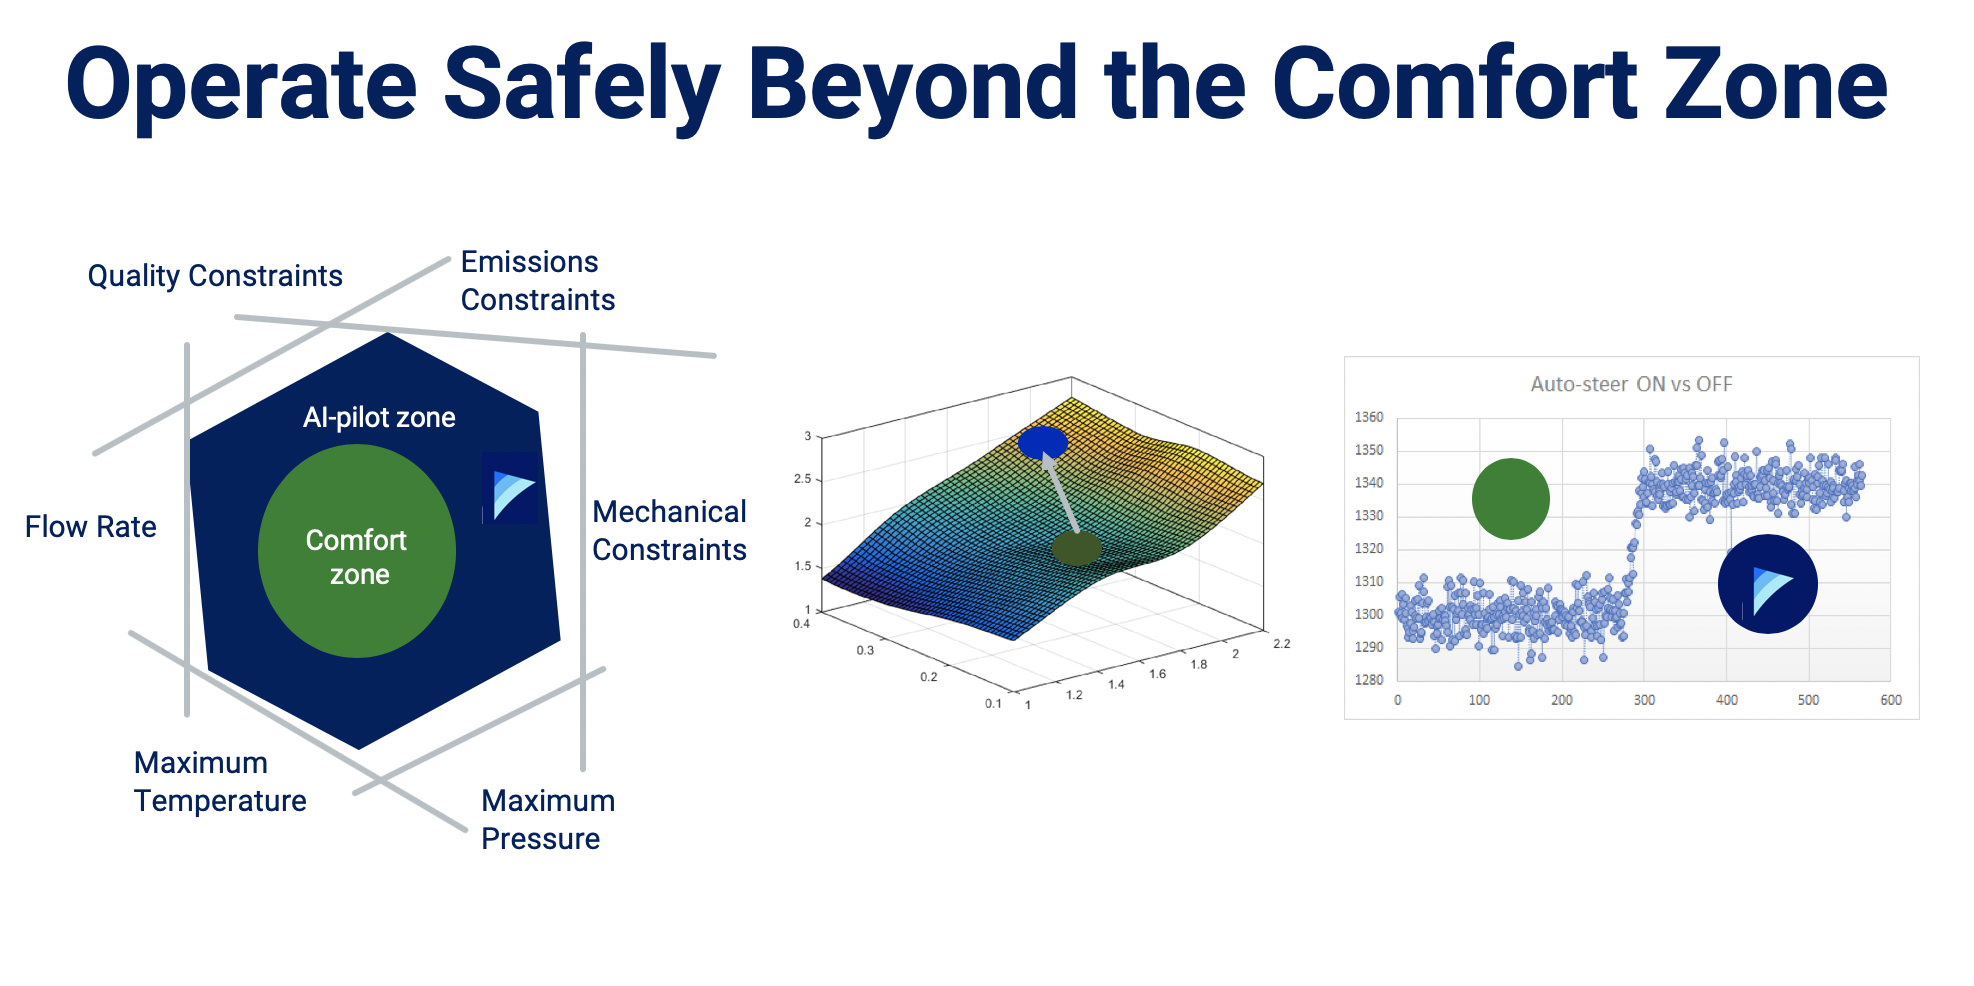 Operate Safely Beyond the Comfort Zone